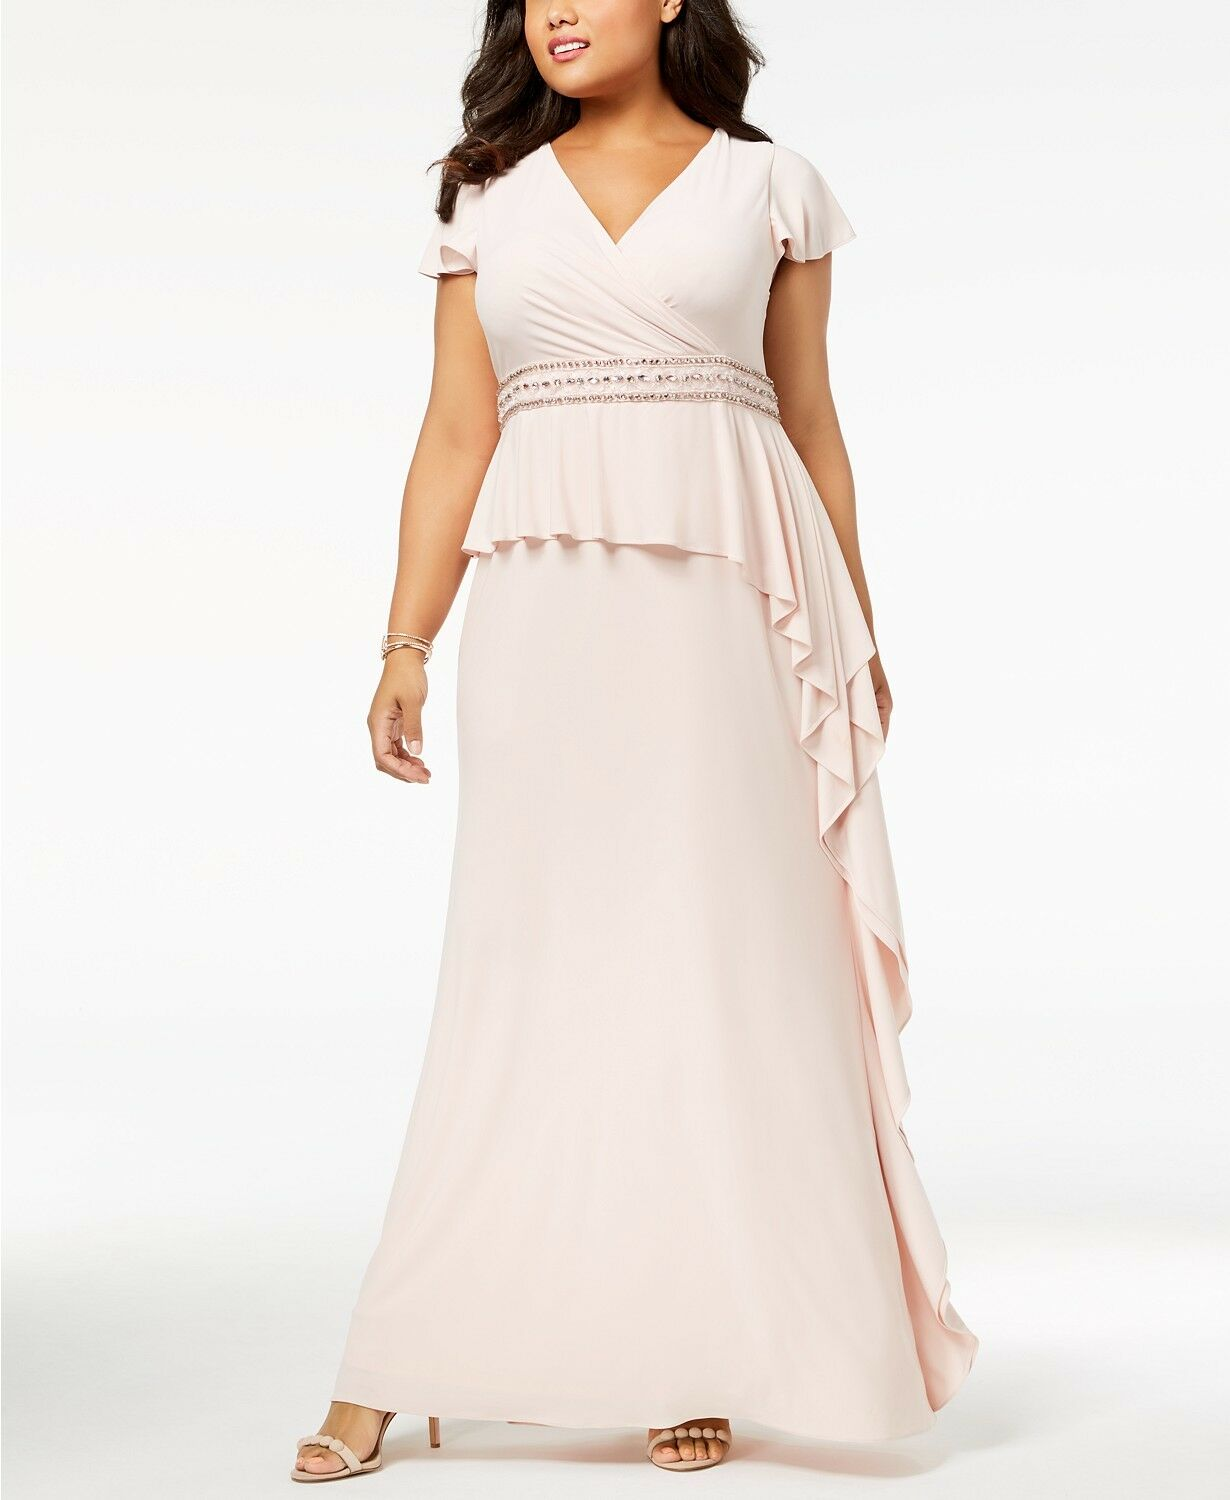 Adrianna Papell Plus Size Ruffled Gown MSRP  229 Size 14W A 212 NEW